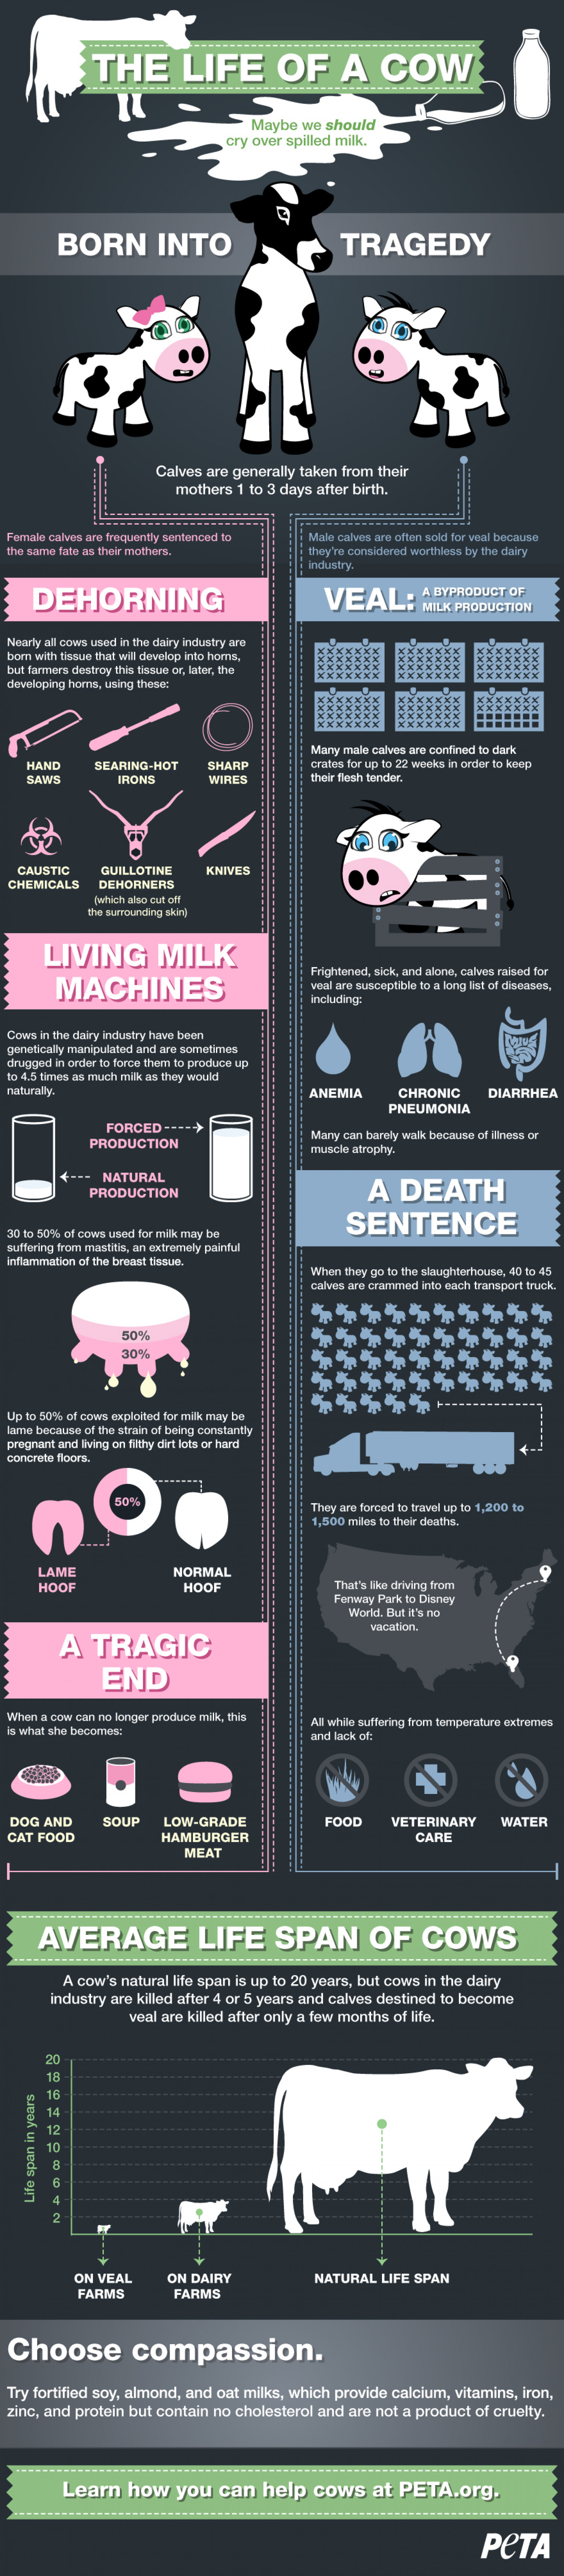 The Life of a Cow  Infographic